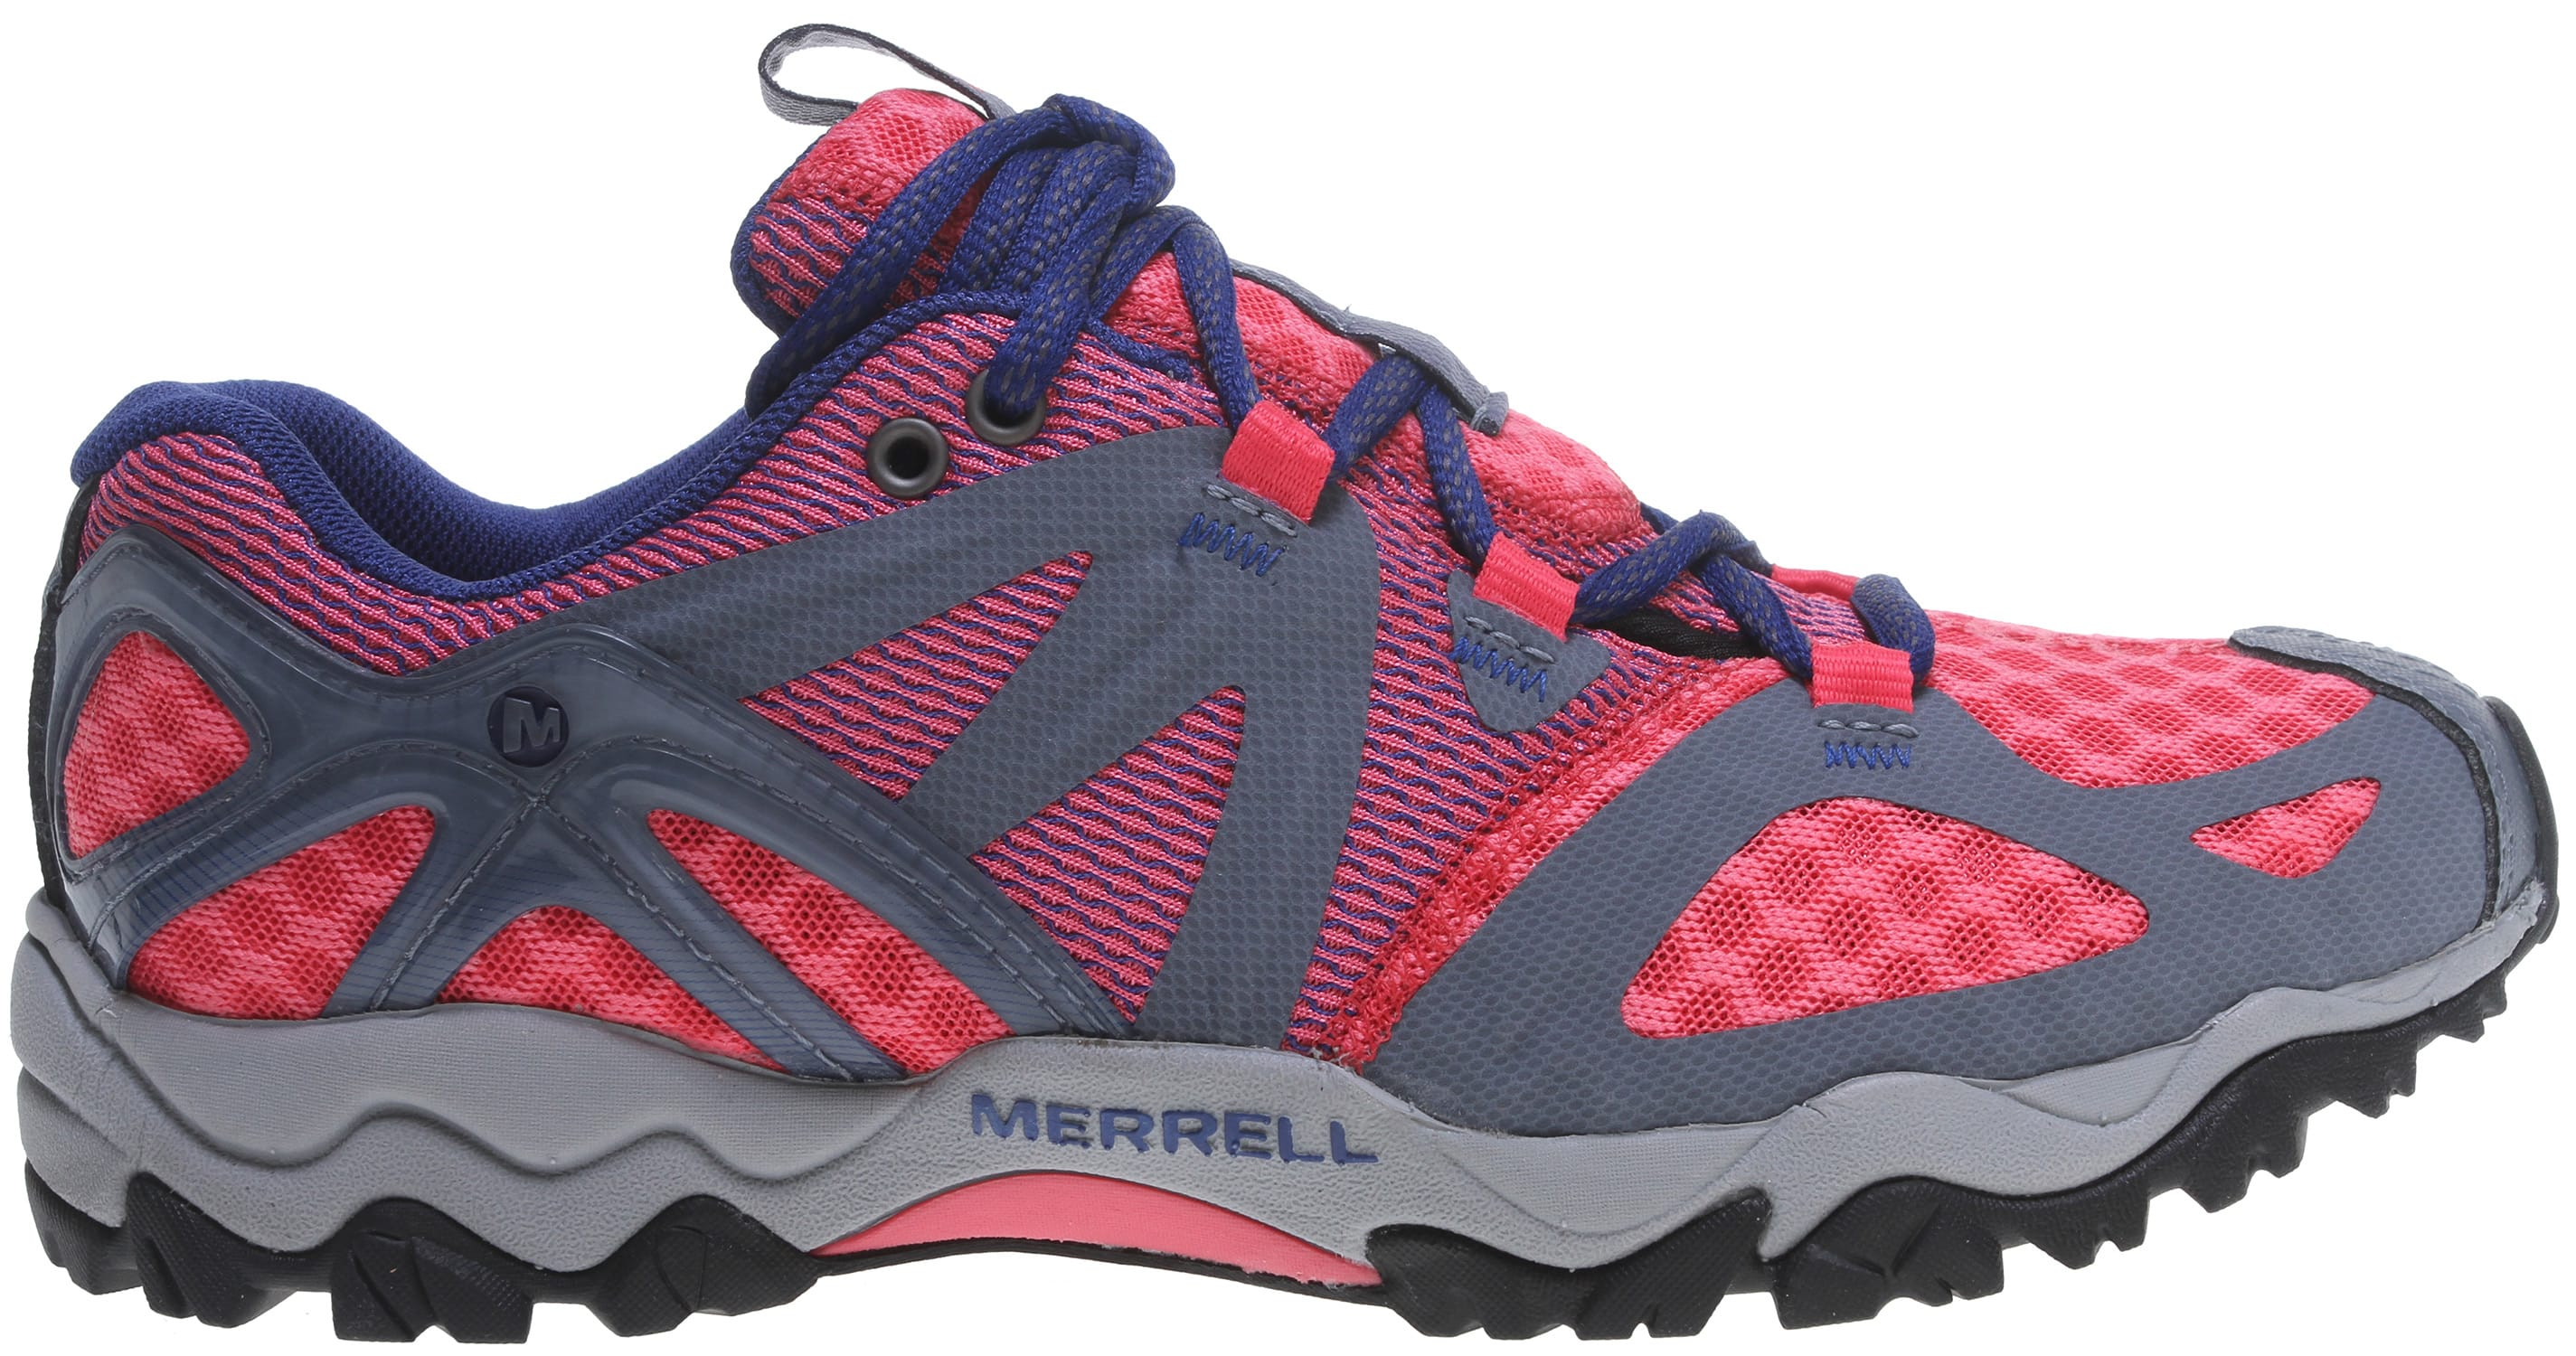 On Sale Merrell Grassbow Air Hiking Shoes - Womens up to 50% off